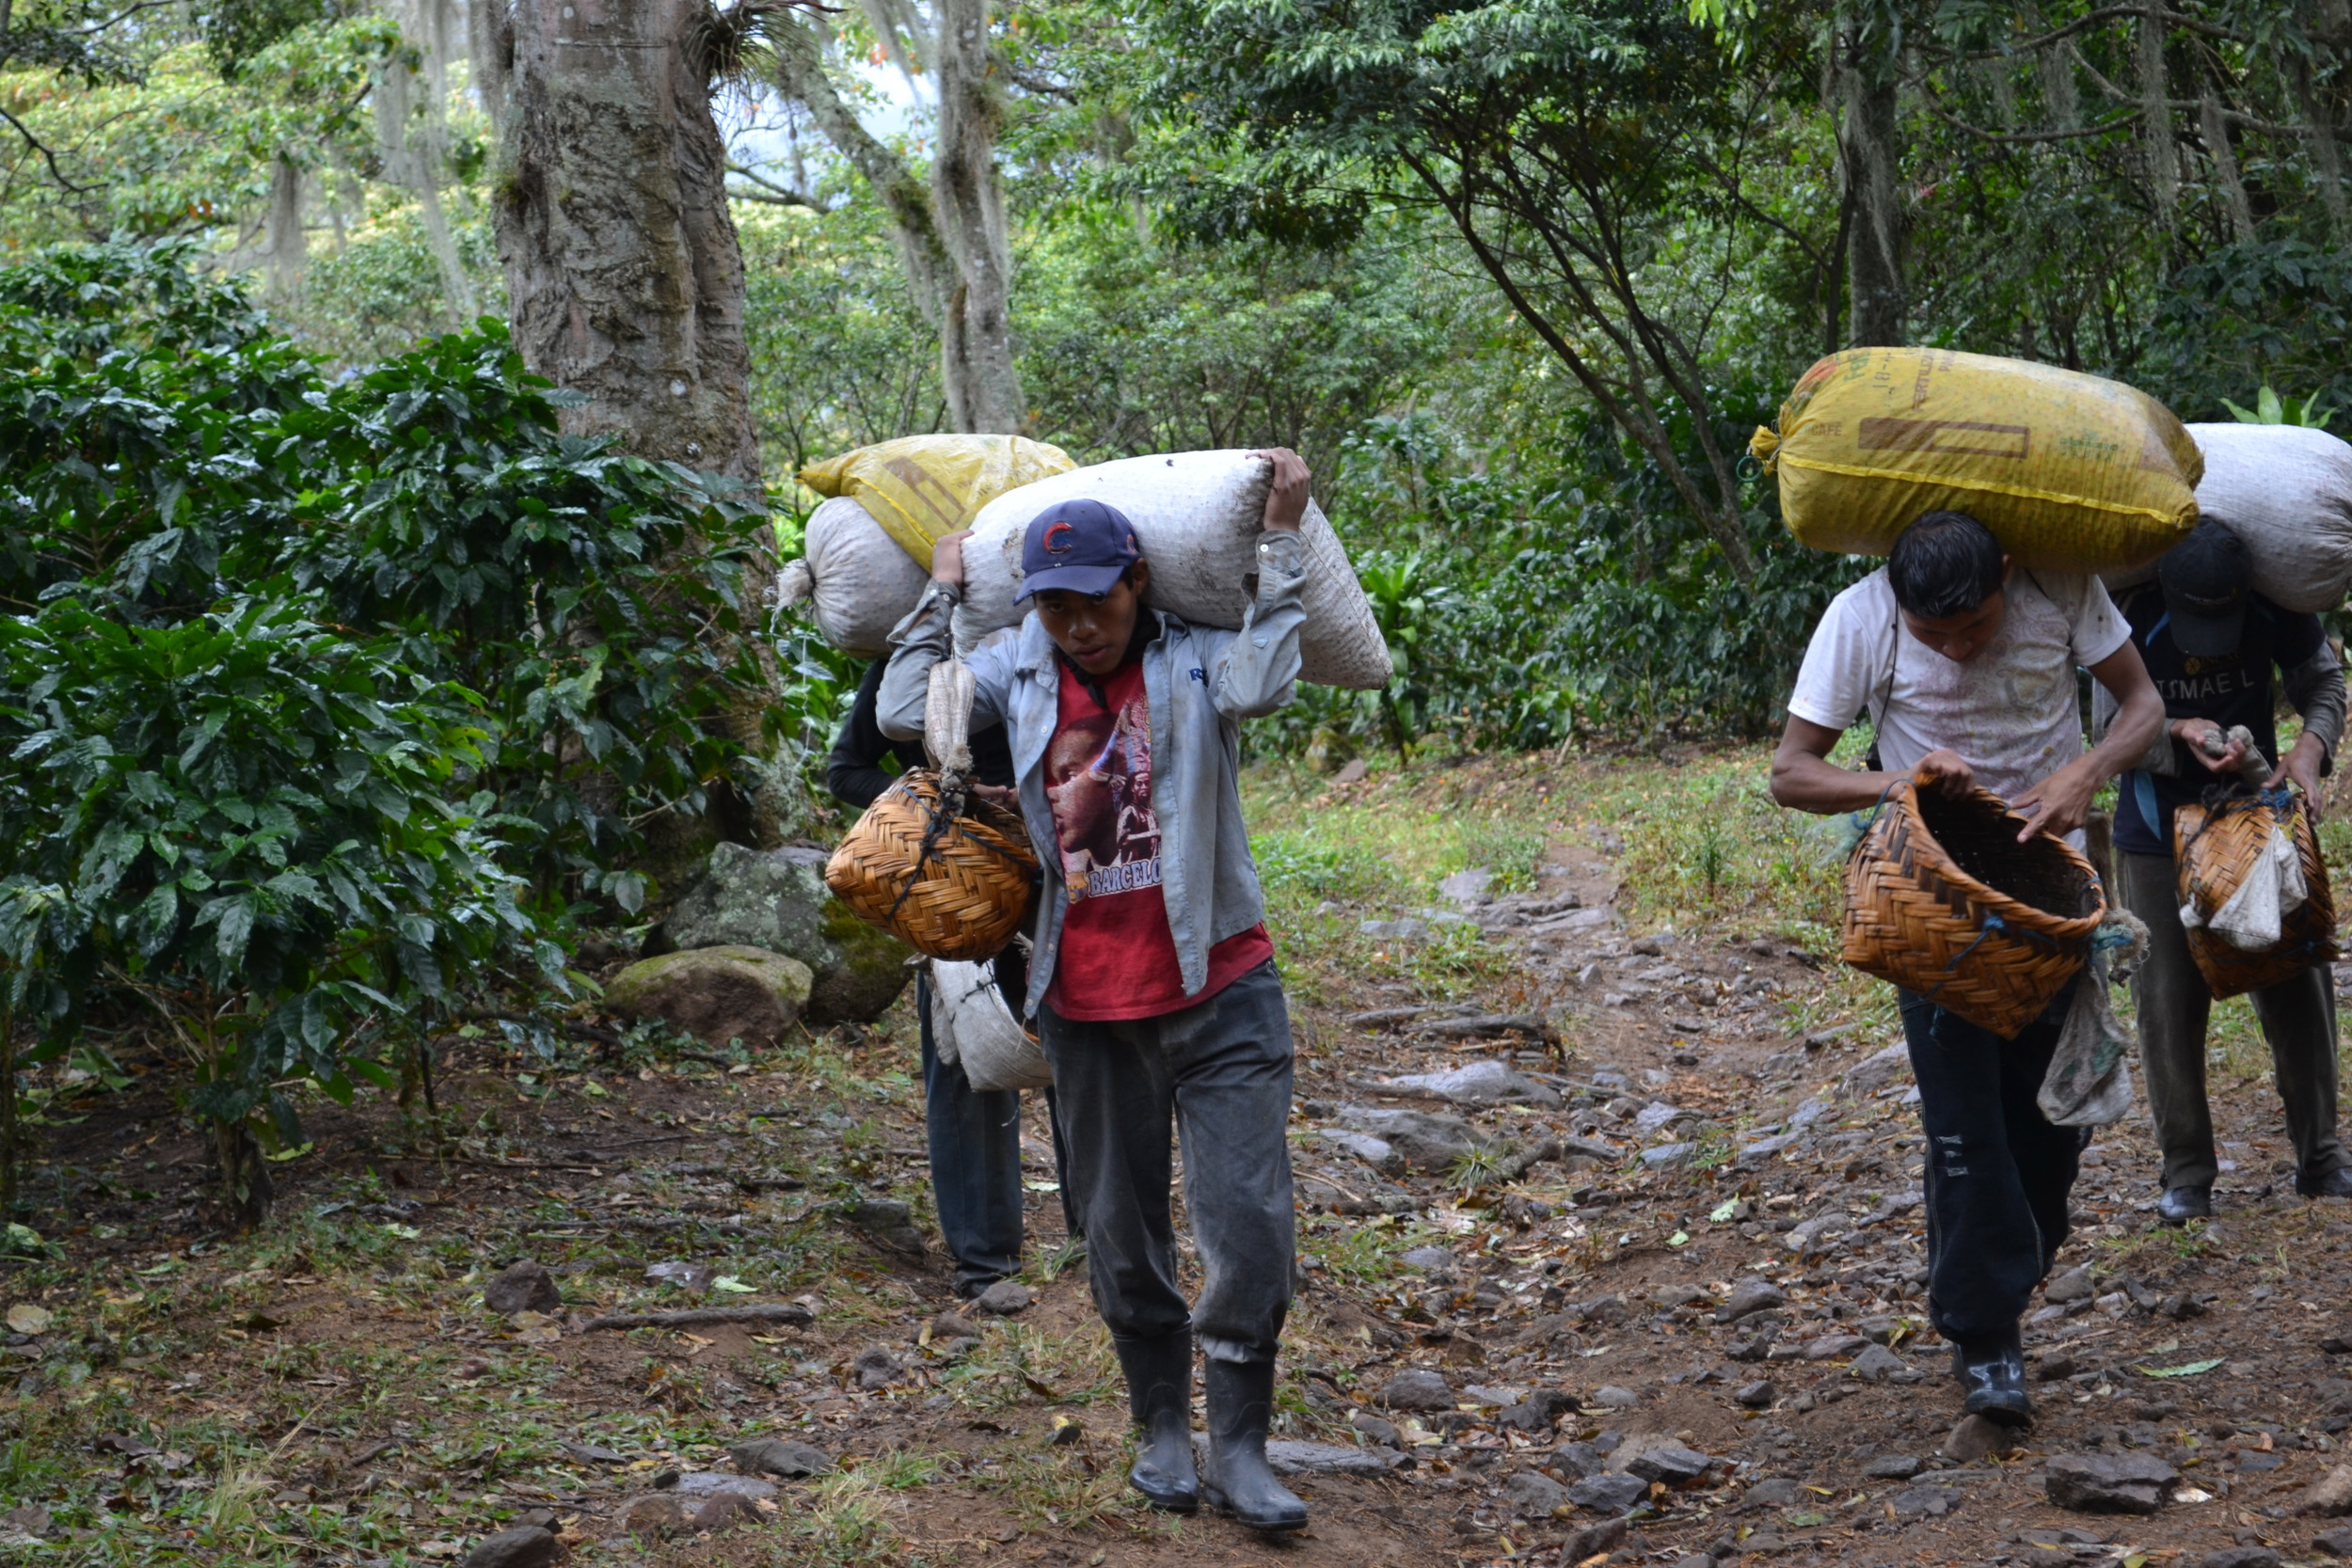 Observing the farming community. Here coffee pickers carry the coffee beans they have picked for the day.